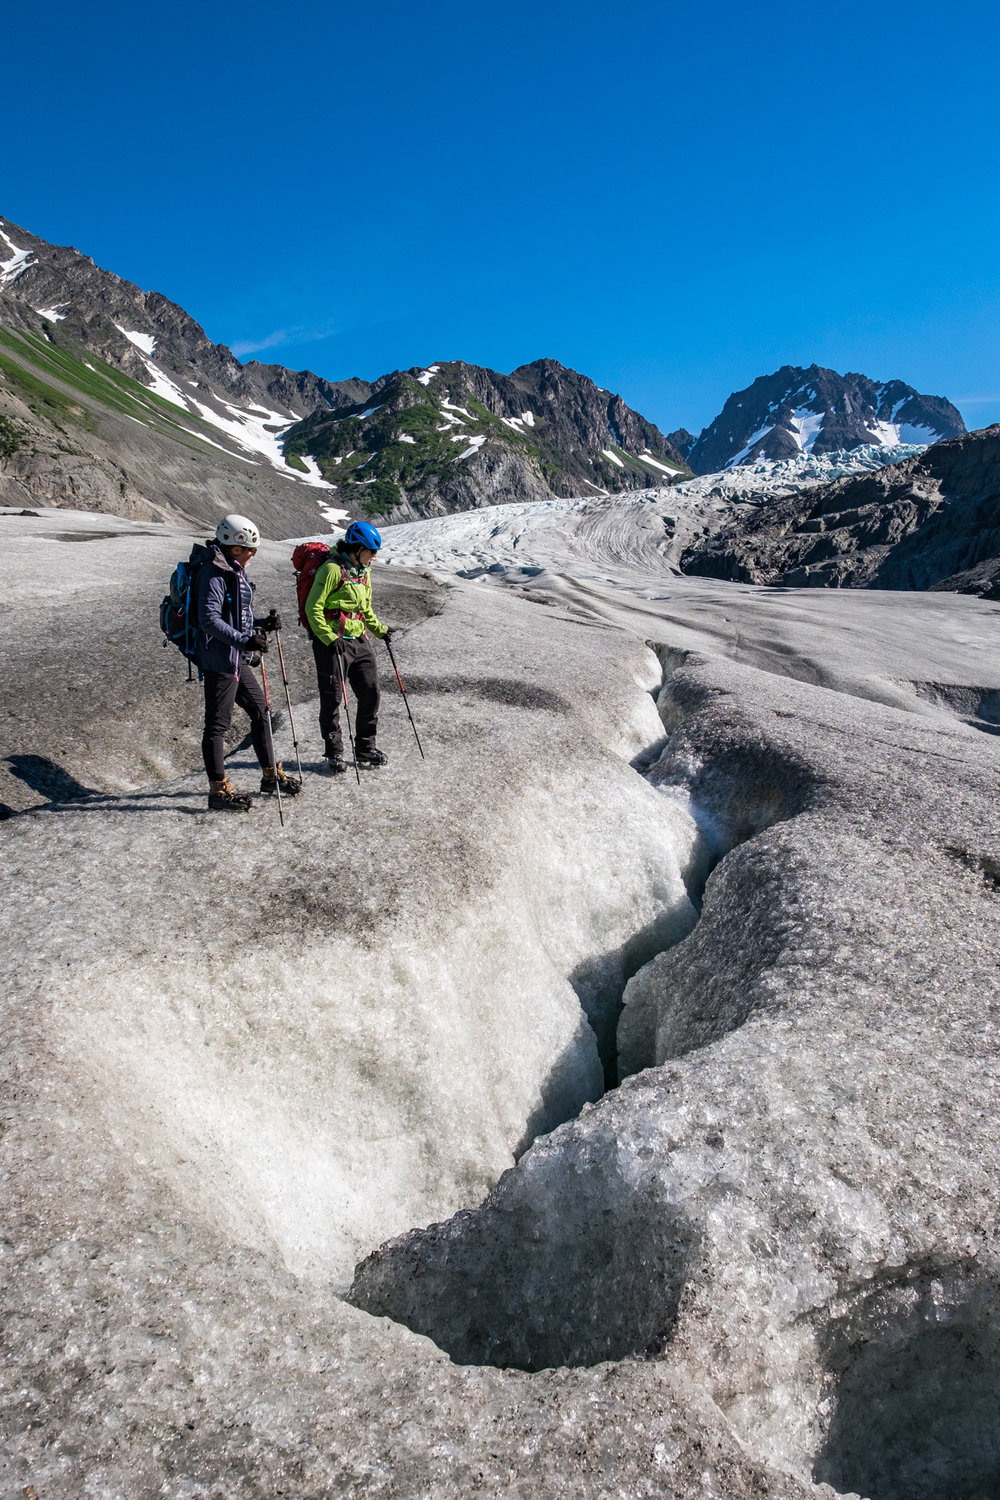 It was a fun few hours exploring the lower reaches of the glacier. We had it all to ourselves!